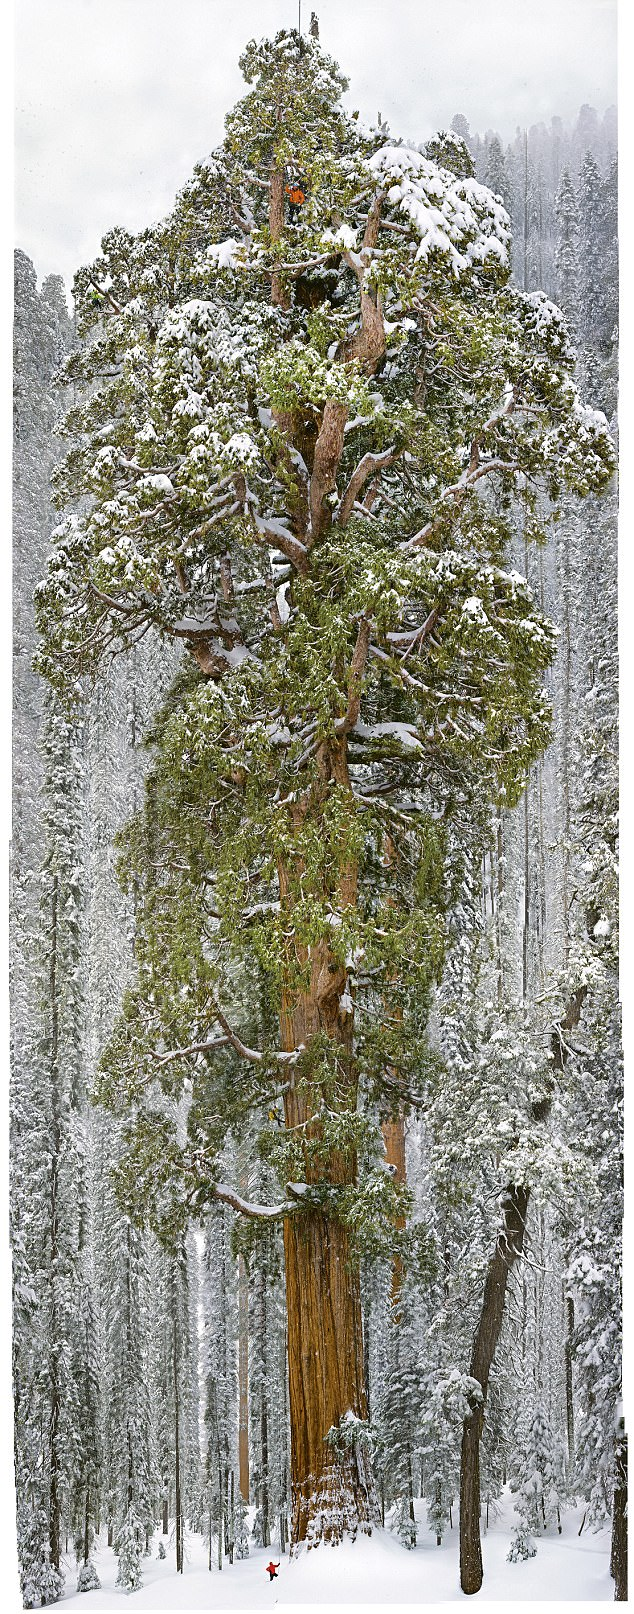 oldest tree in one photo